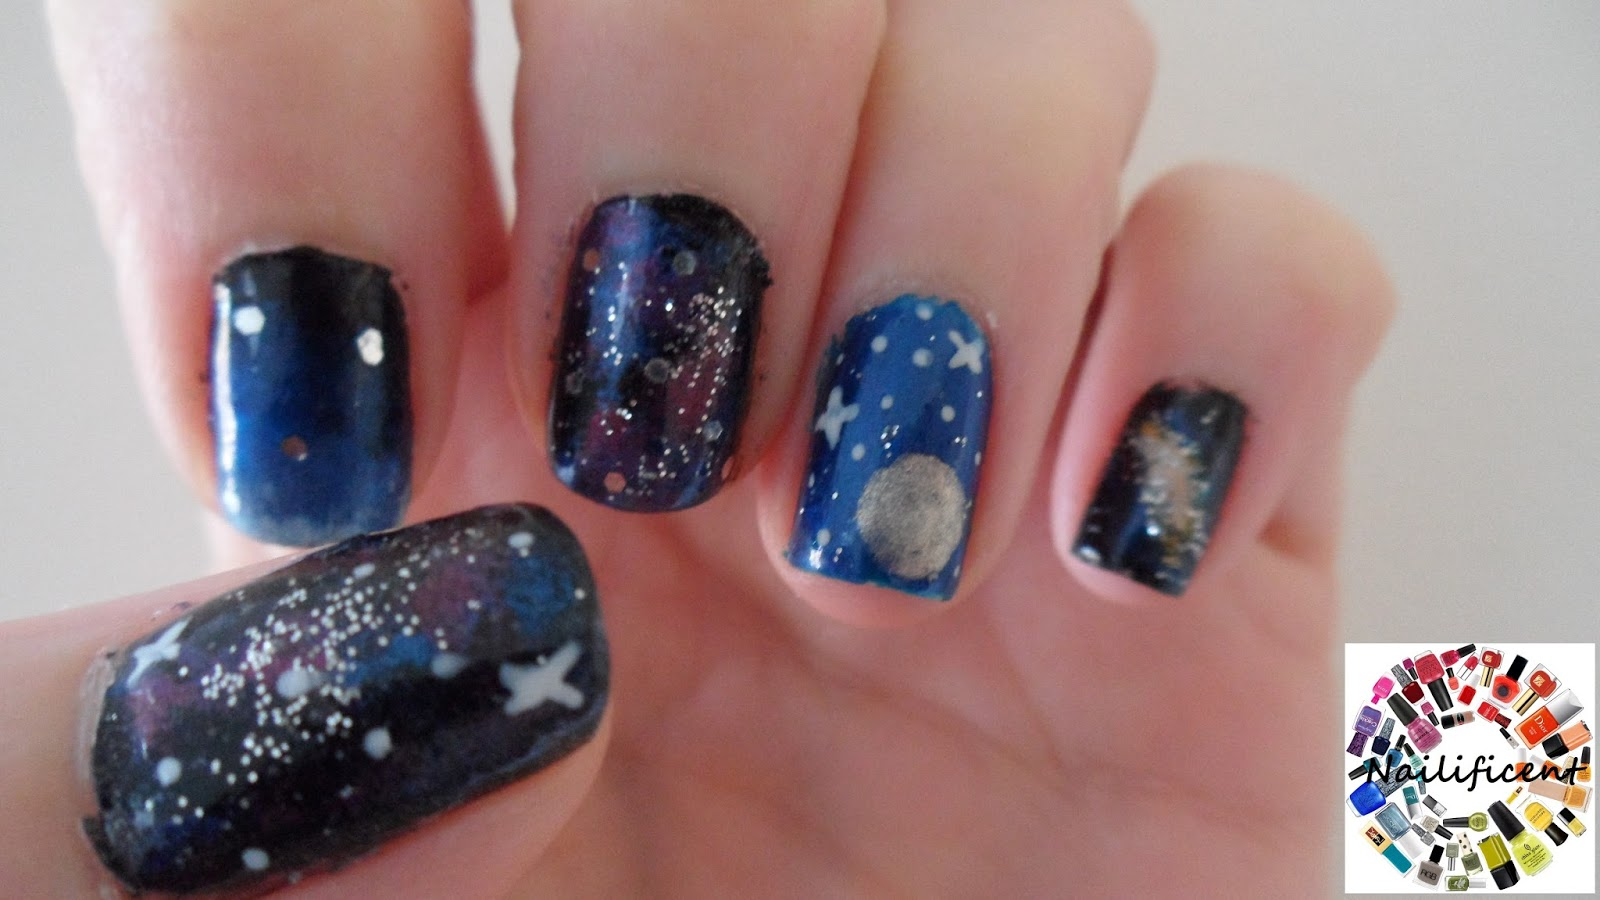 Nailificent: Galaxy Nail art